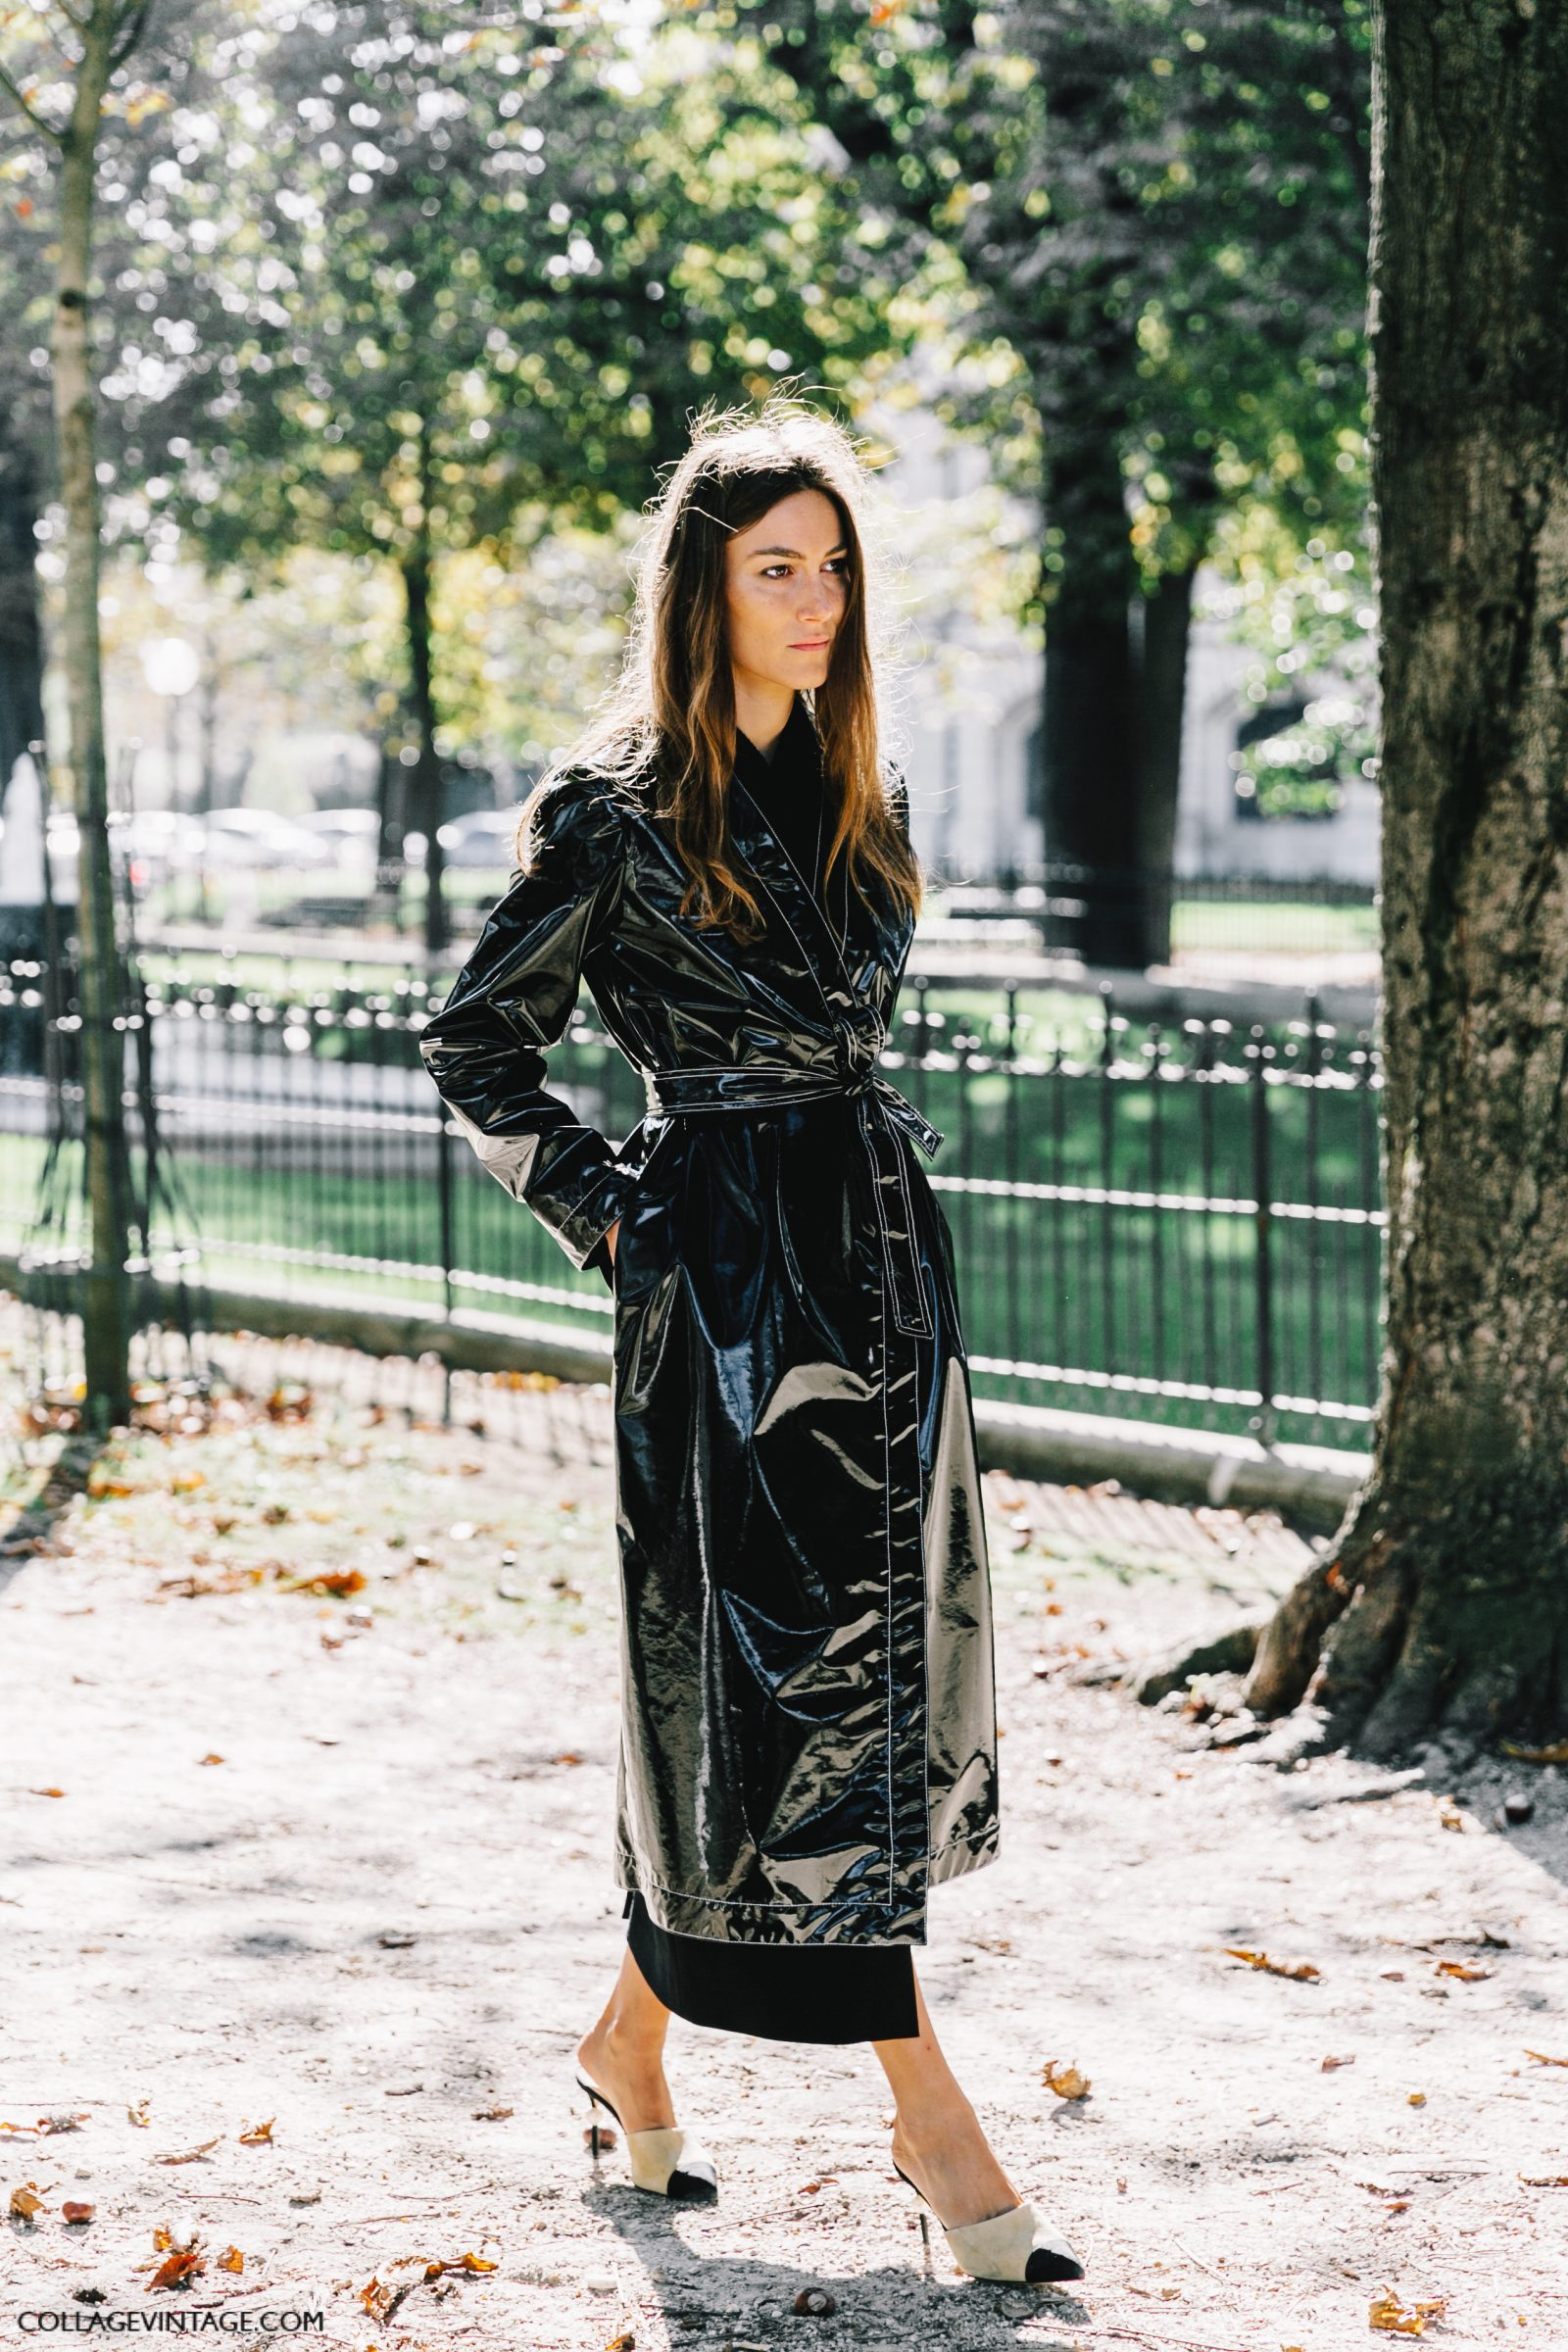 pfw-paris_fashion_week_ss17-street_style-outfits-collage_vintage-chanel-ellery-99-1600x2400